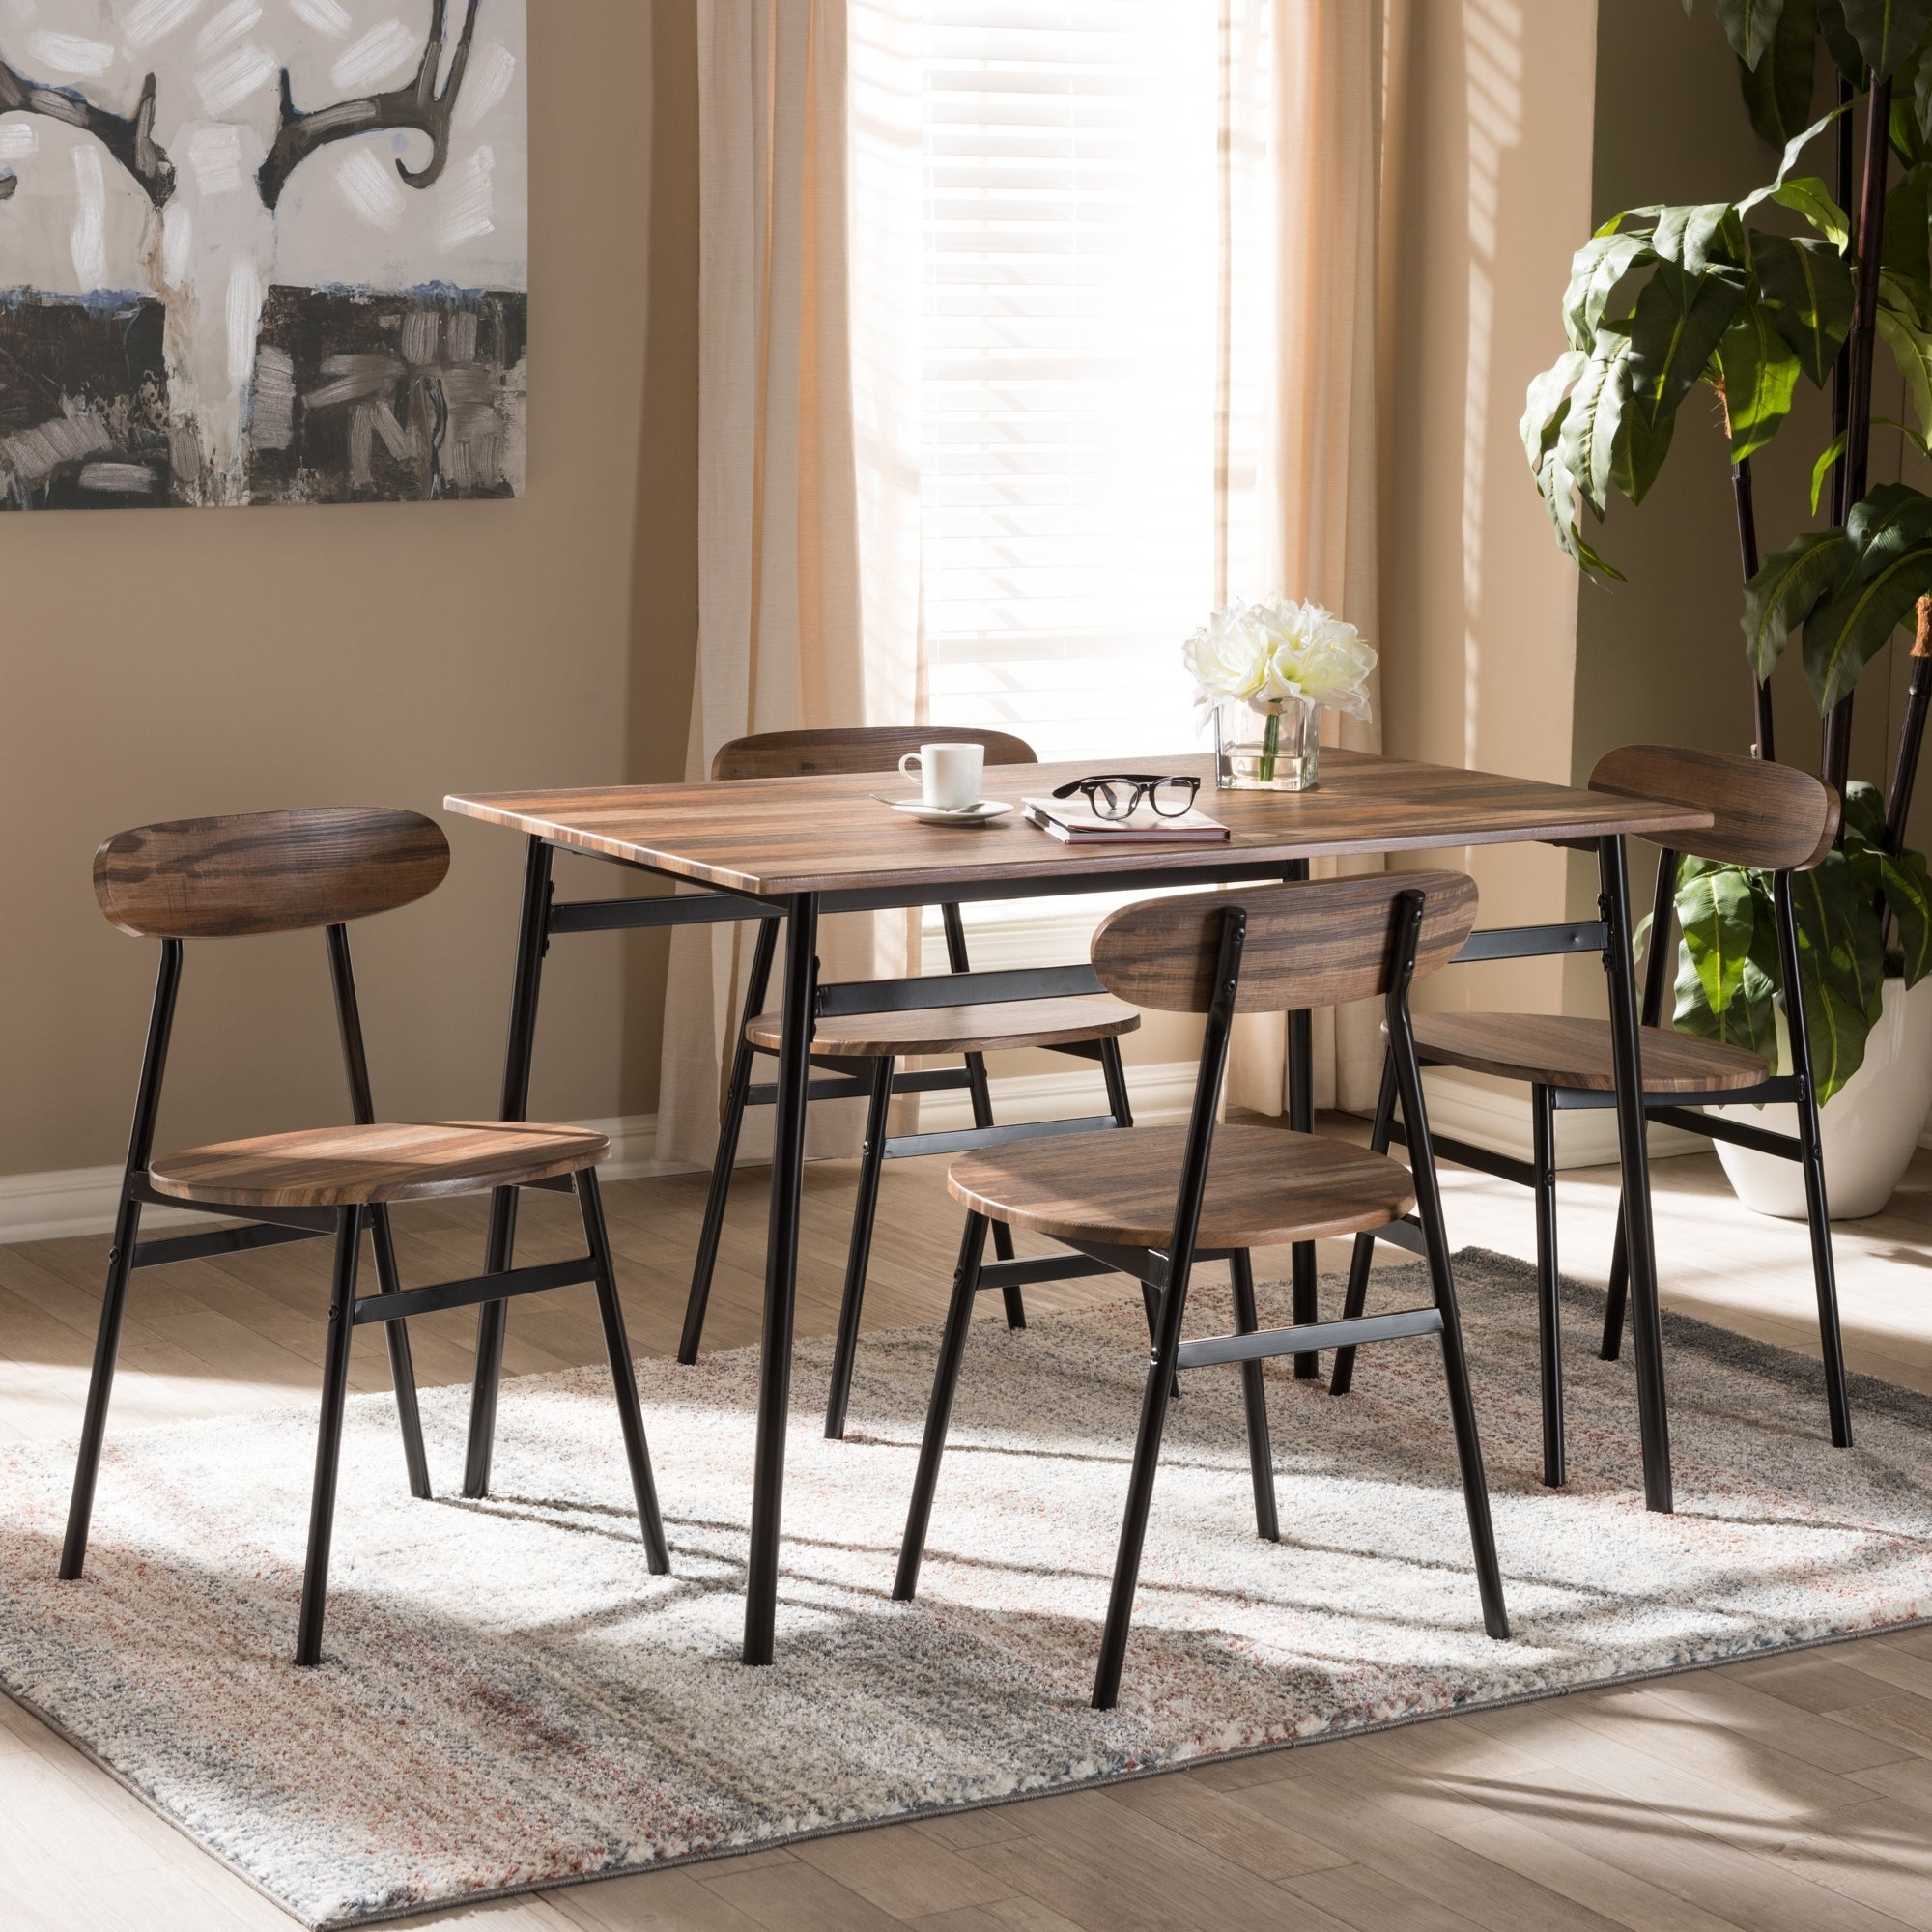 Bedfo 3 Piece Dining Sets Intended For Recent Buy 5 Piece Sets Kitchen & Dining Room Sets Online At Overstock (View 15 of 20)